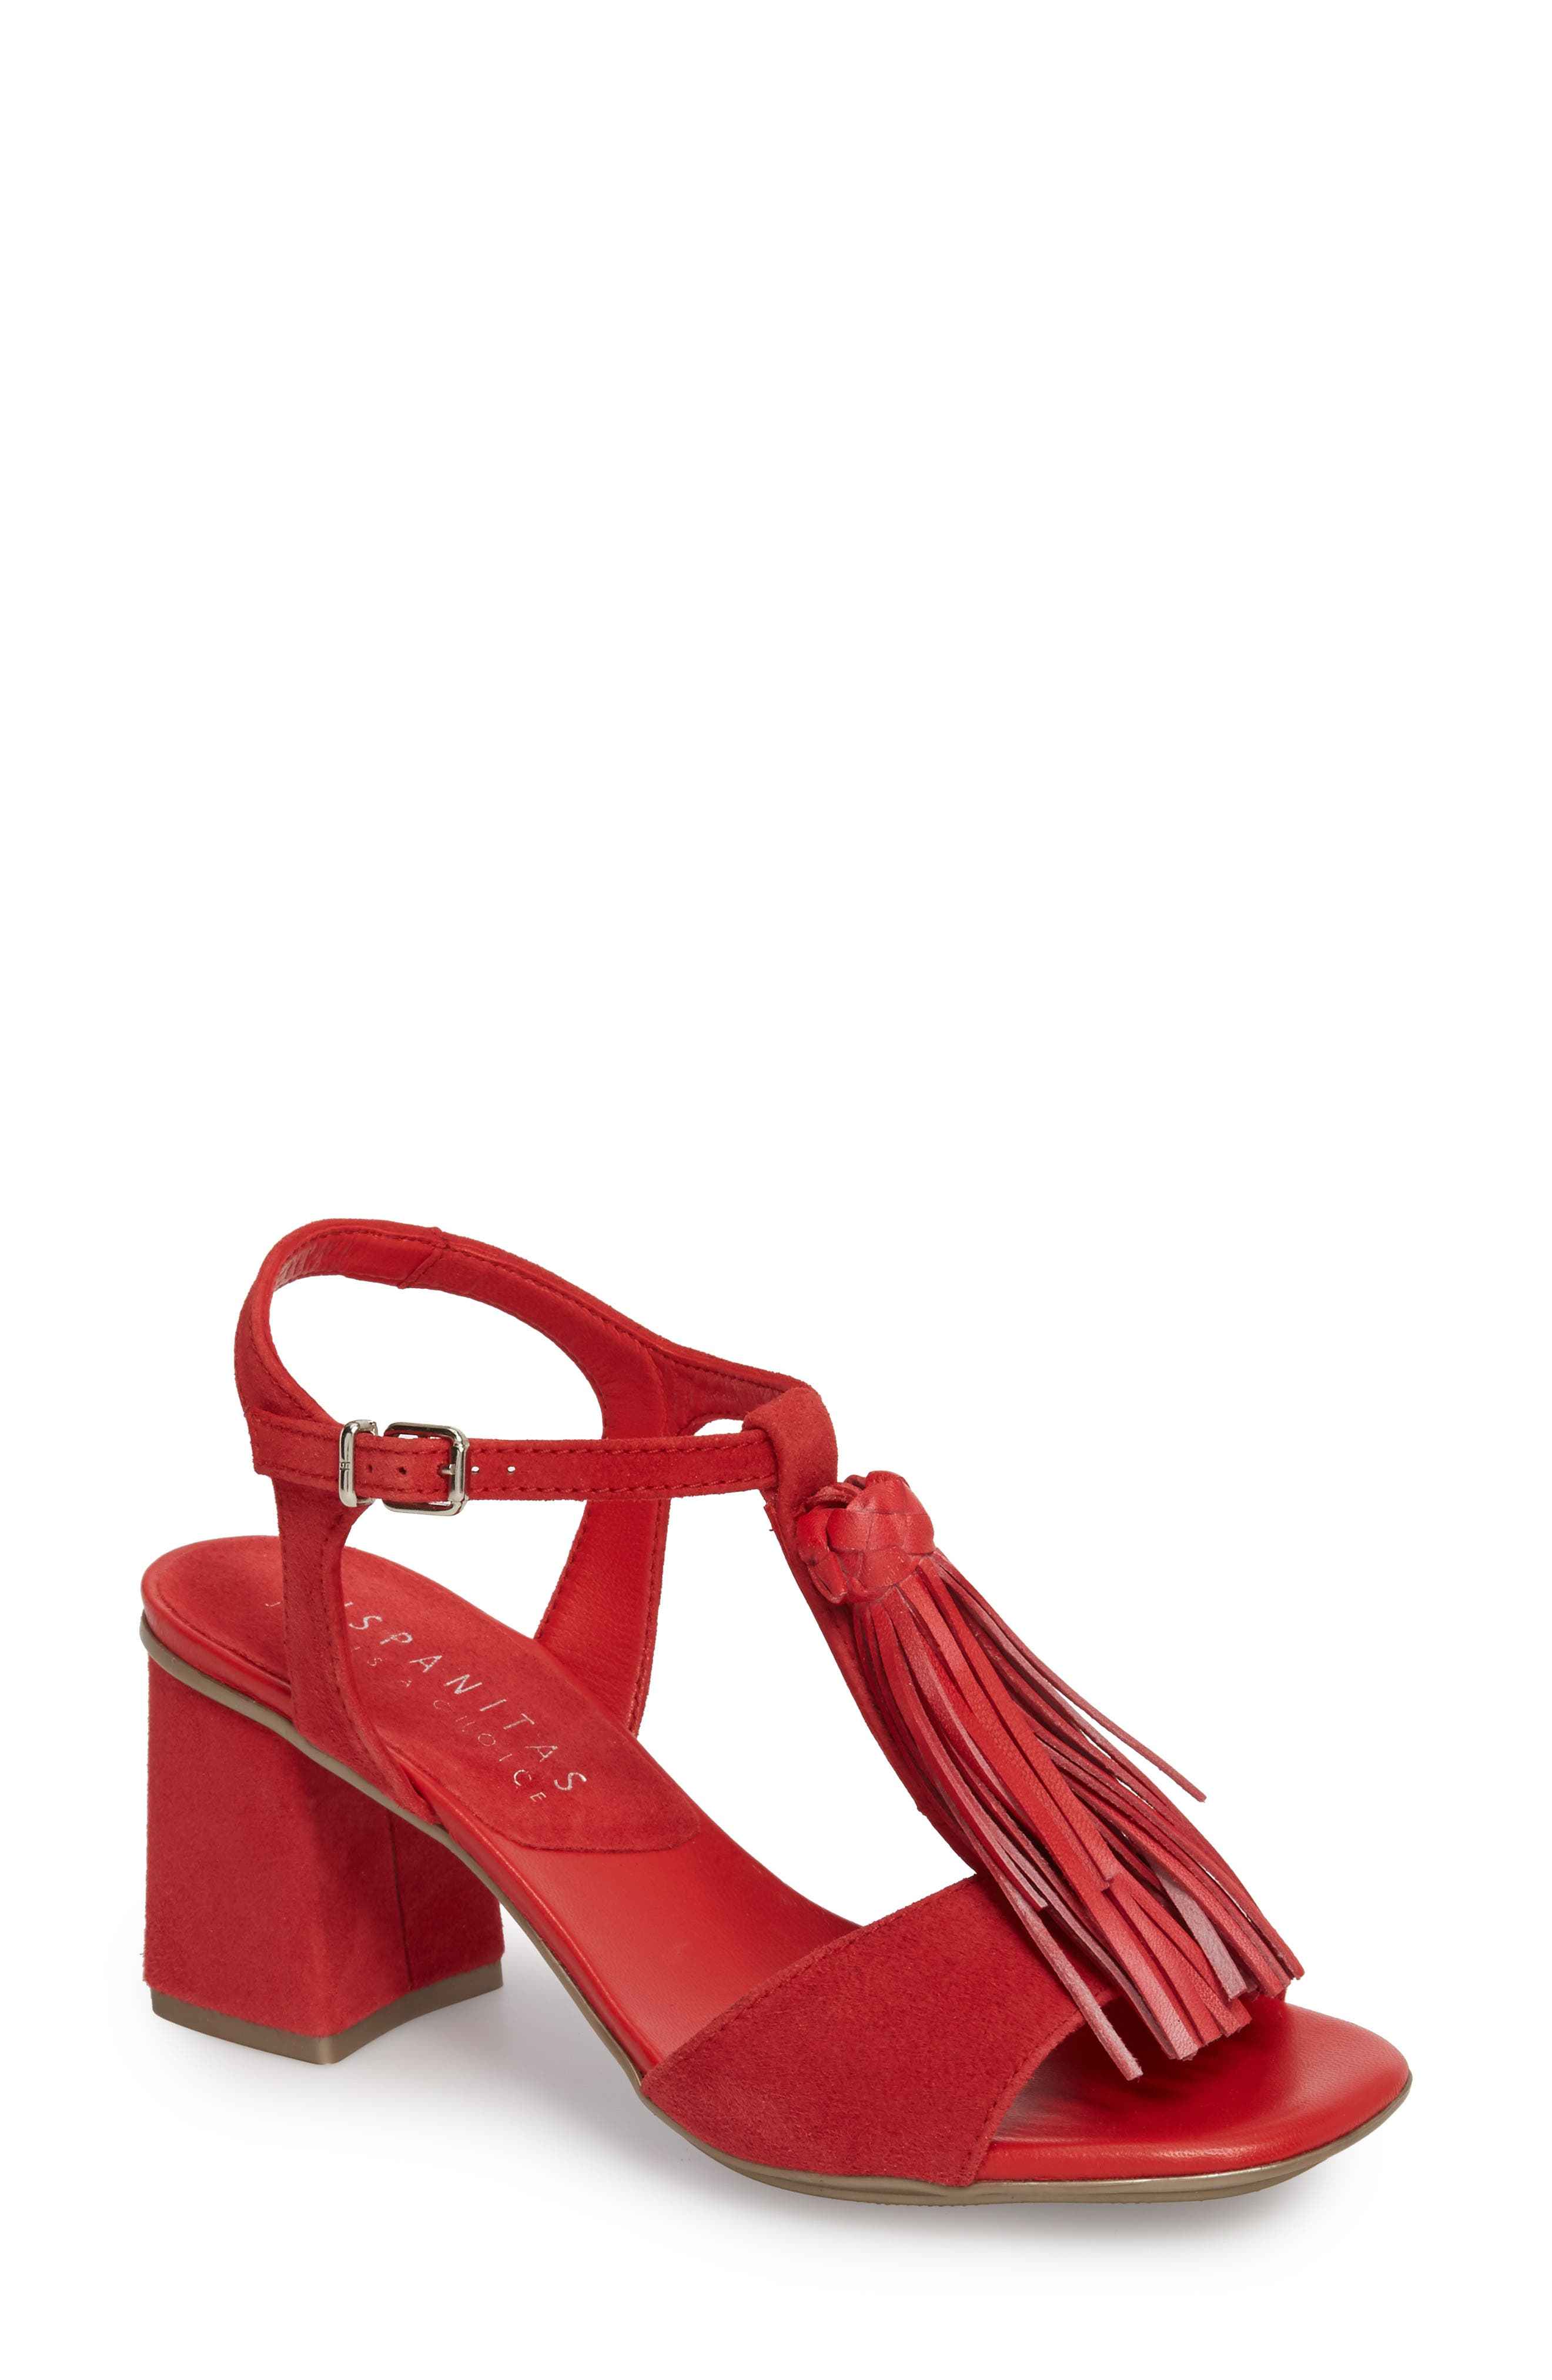 Schulyer T-Strap Sandal,                         Main,                         color, Rubi Leather